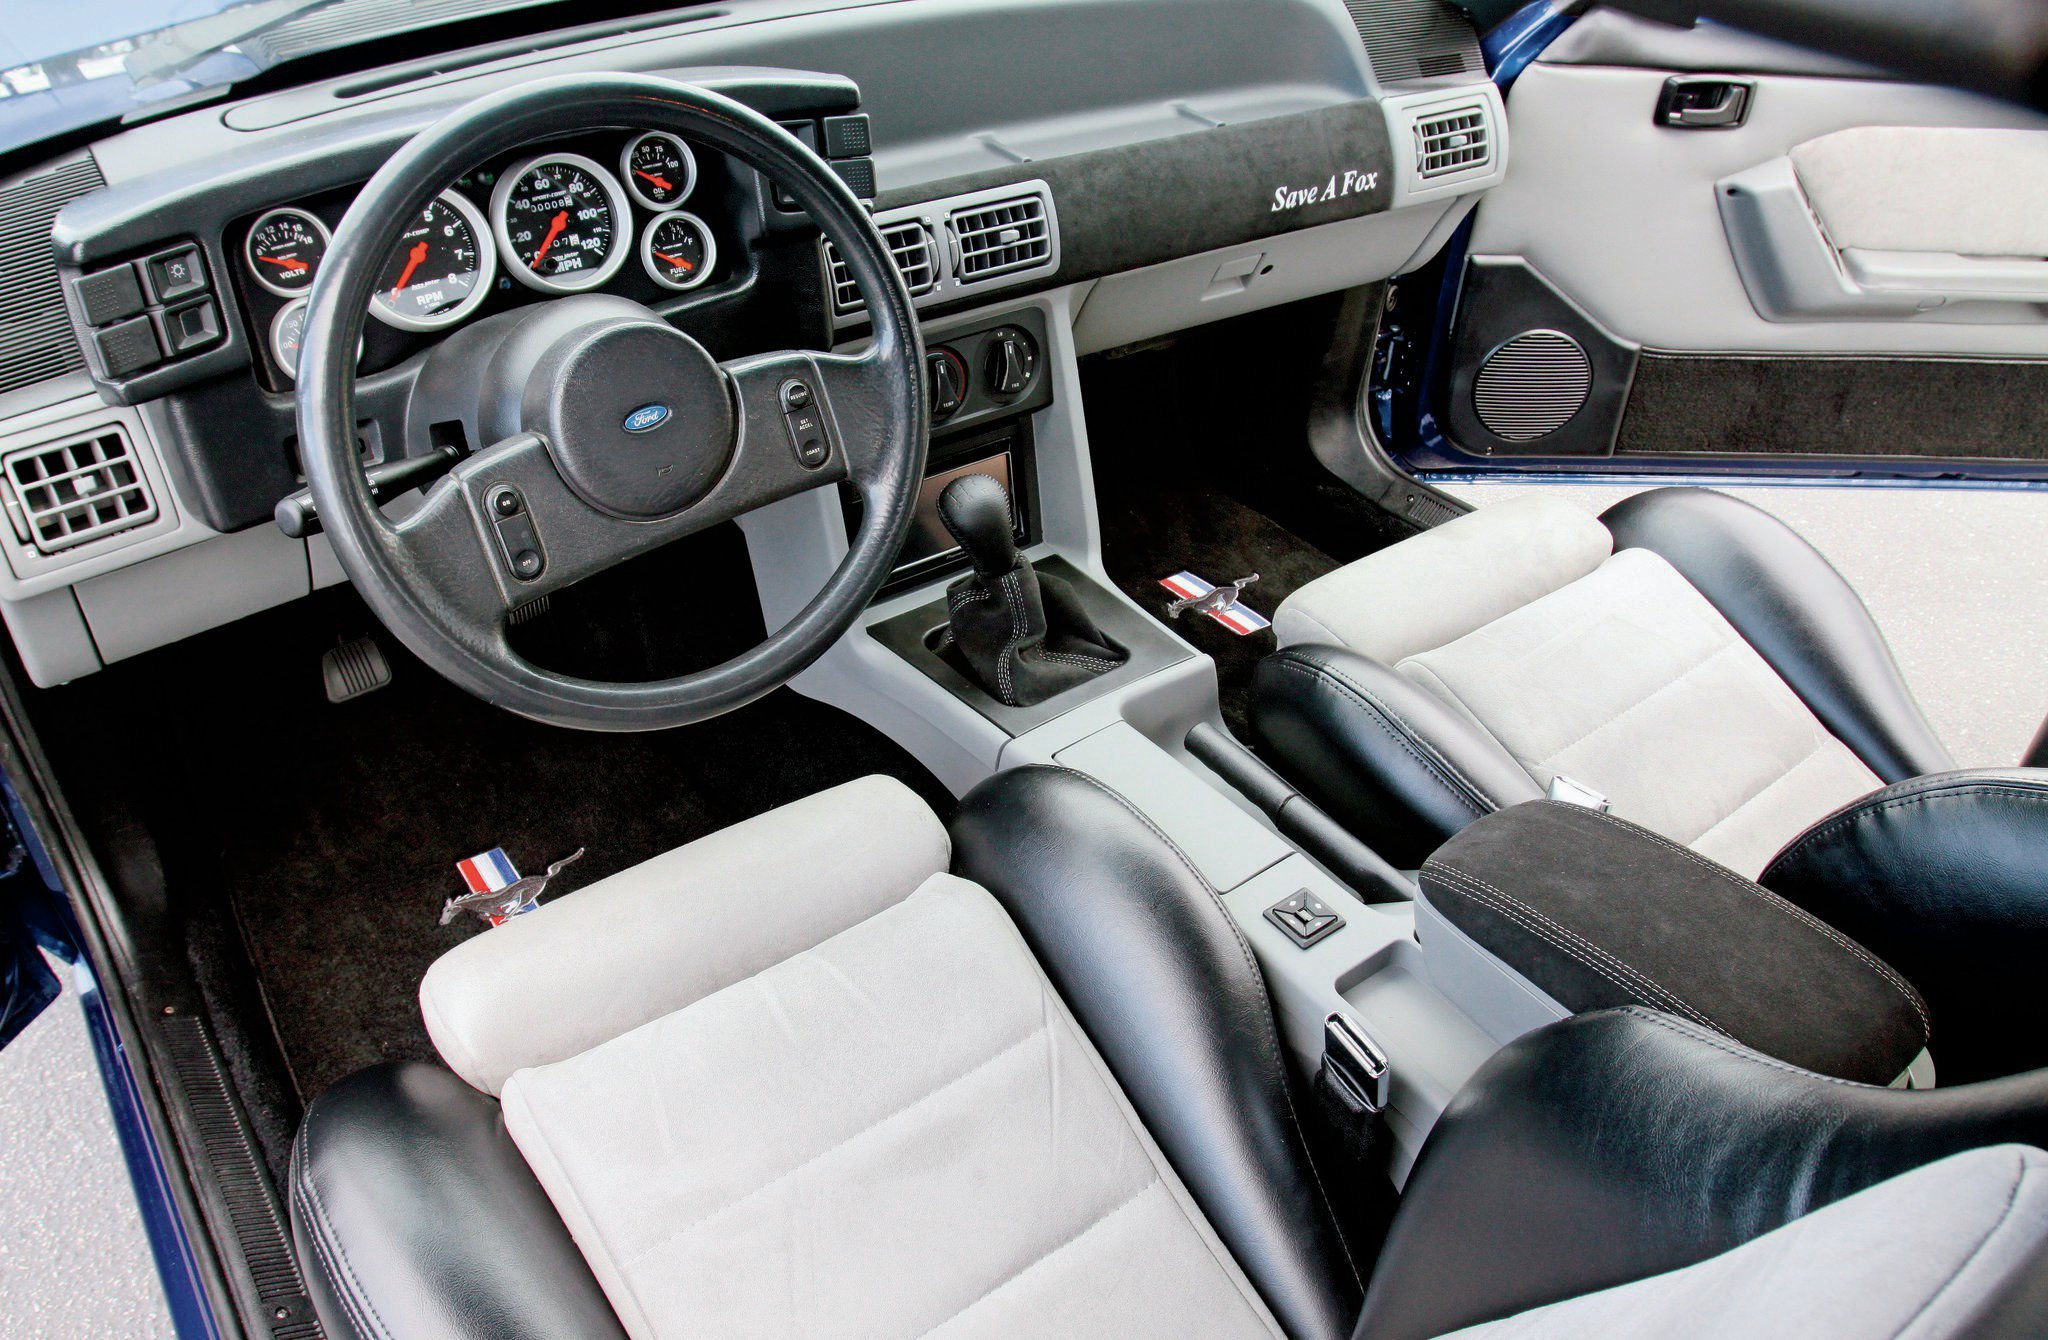 1989 Ford Mustang Lx Interior - Photo 76003551 - 1989 Ford ...